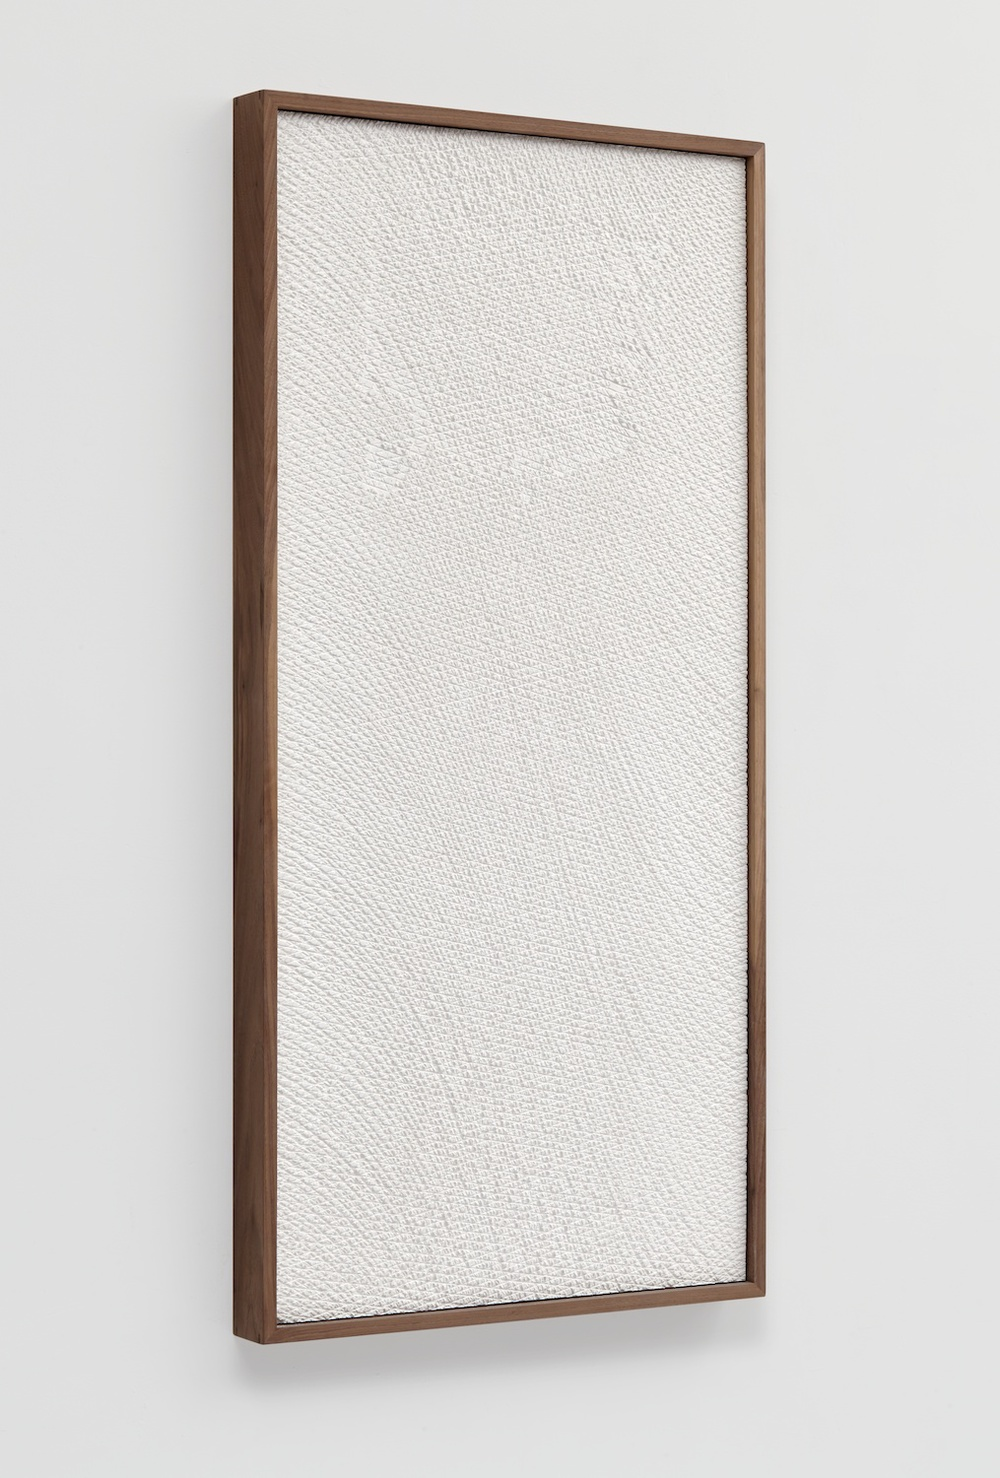 "Anthony Pearson Untitled (Etched Plaster) 2014 Pigmented hydrocal in walnut frame 48 1/2"" x 24 1/2"" x 2 1/2"" AP358"